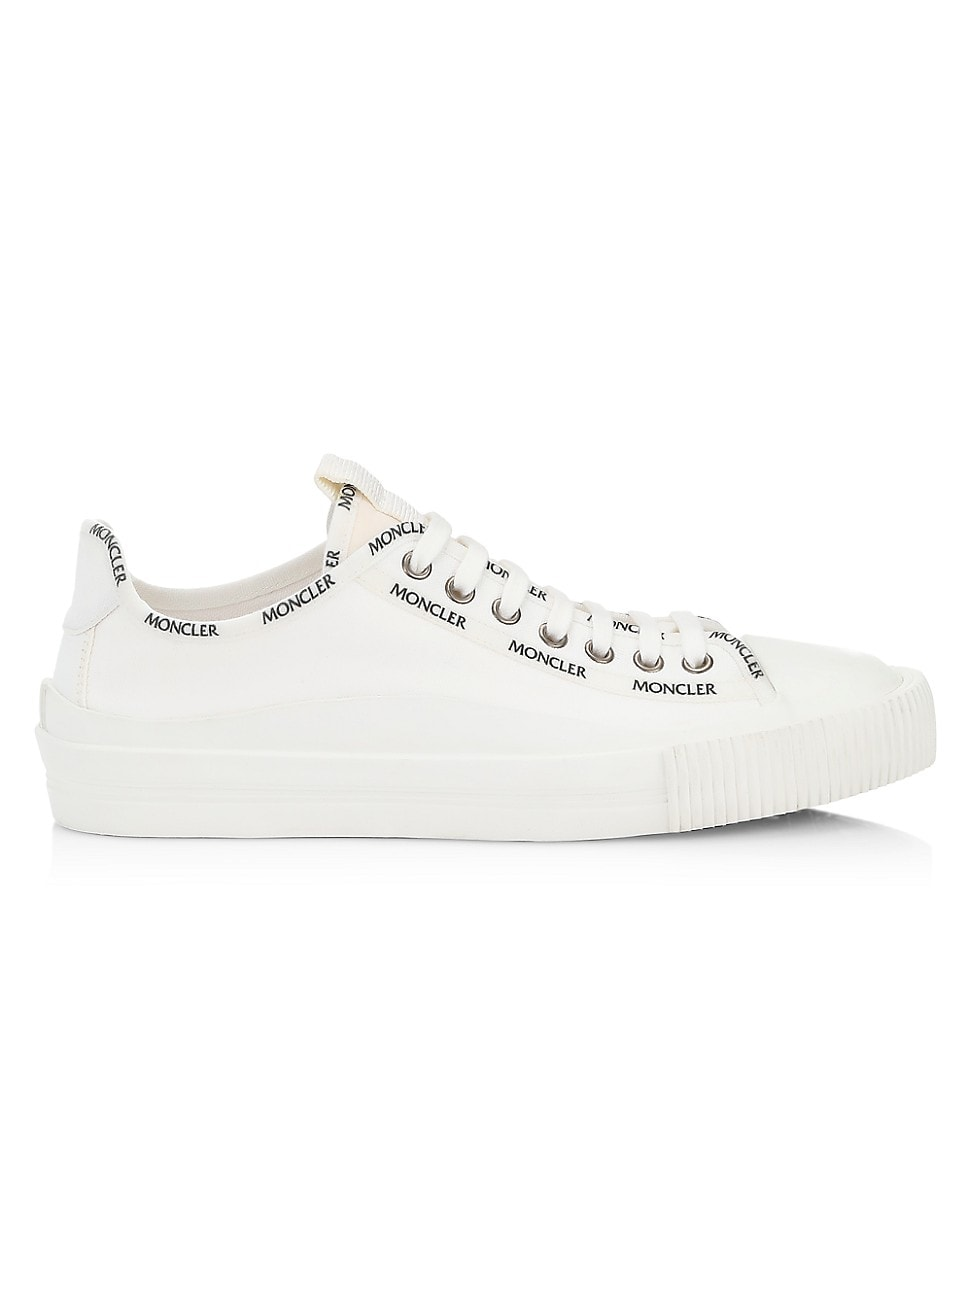 Moncler Canvases WOMEN'S GLISSIERE CANVAS SNEAKERS